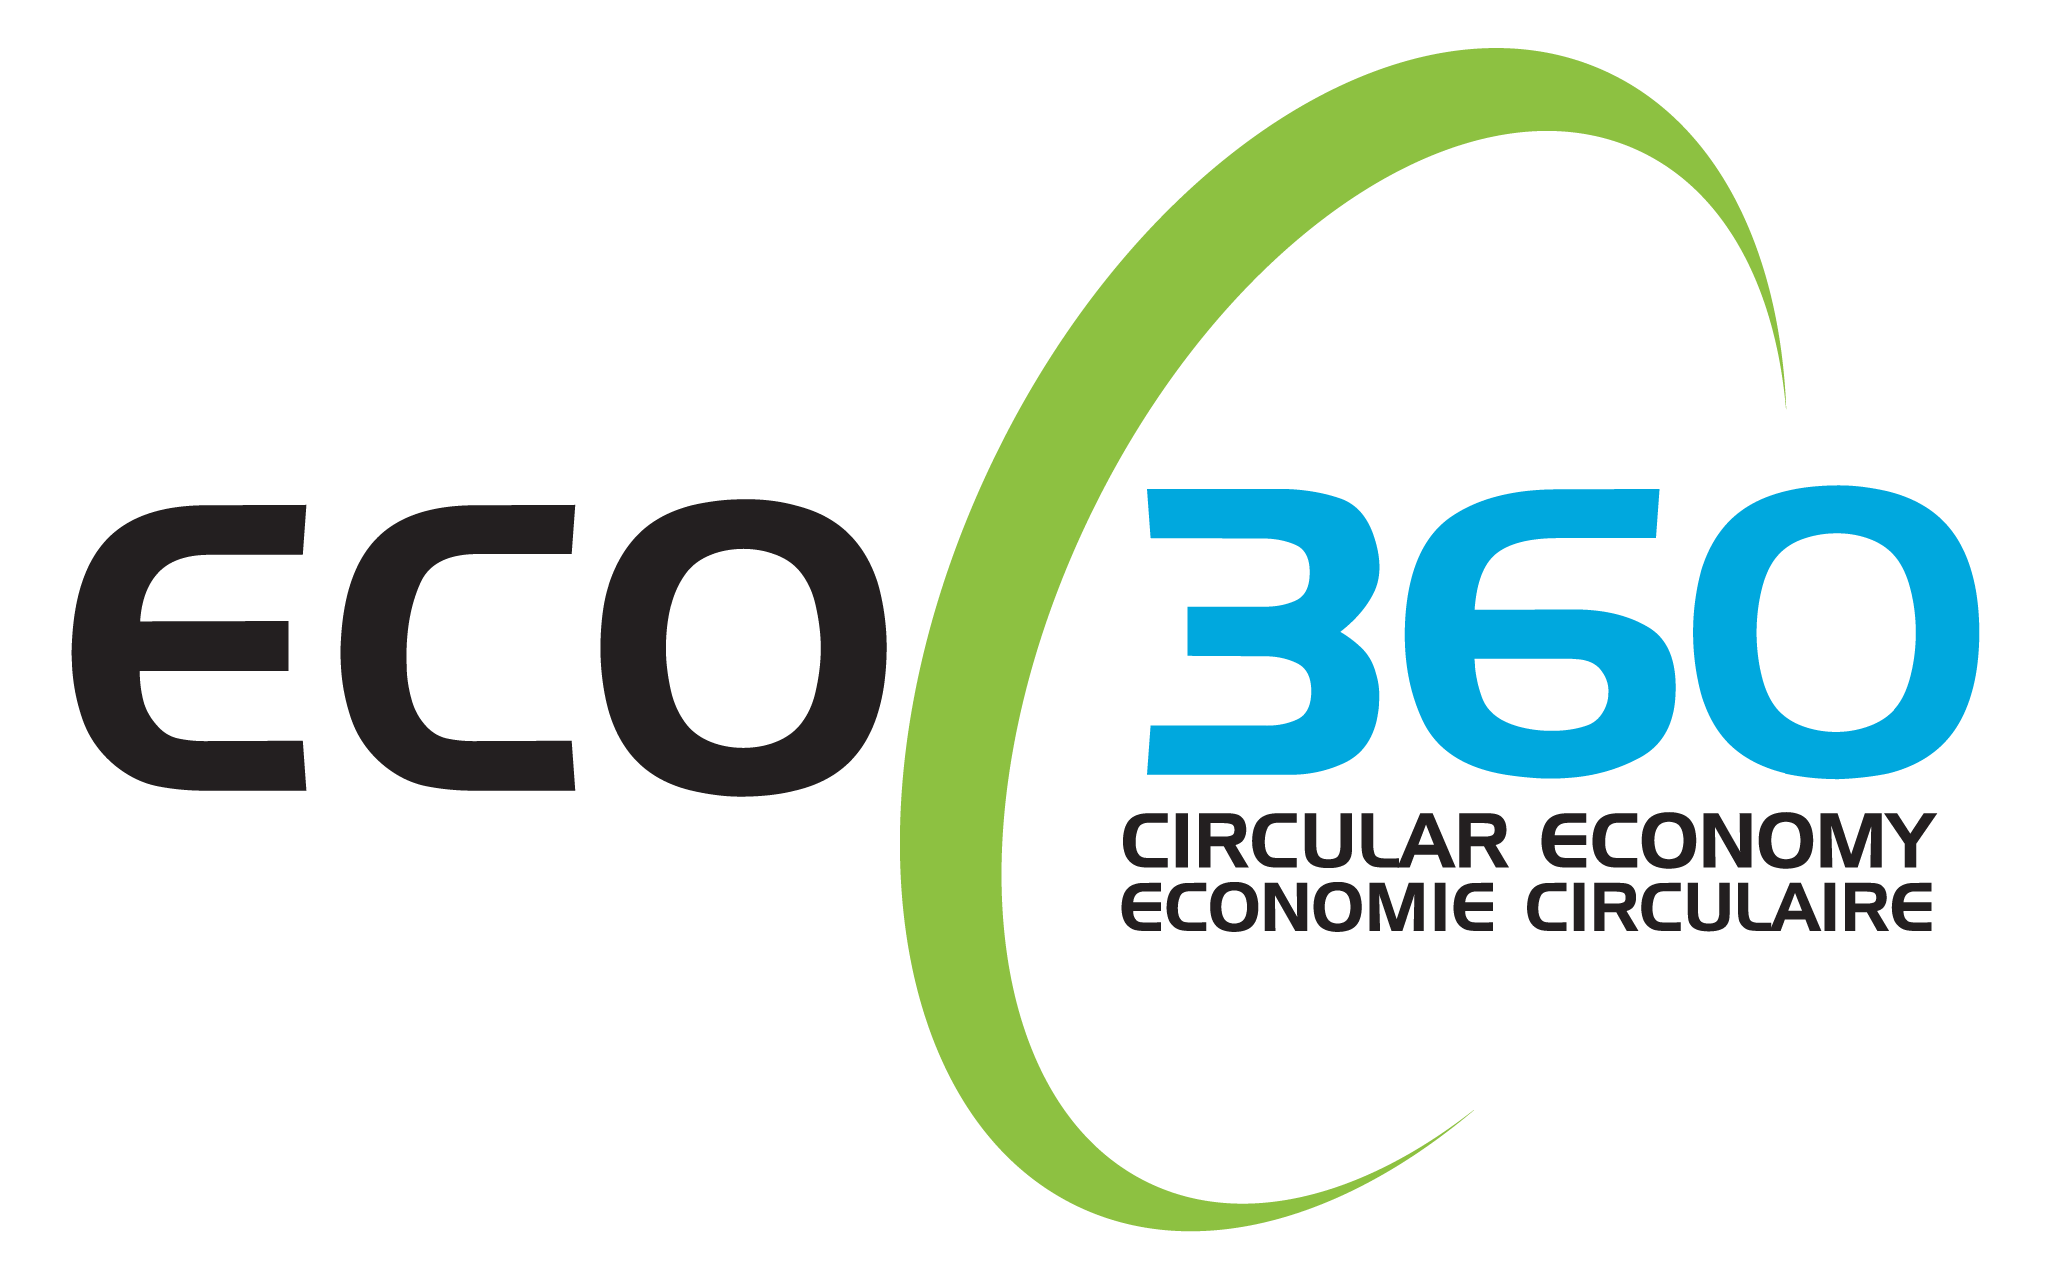 eco 360 logo version corrige.png